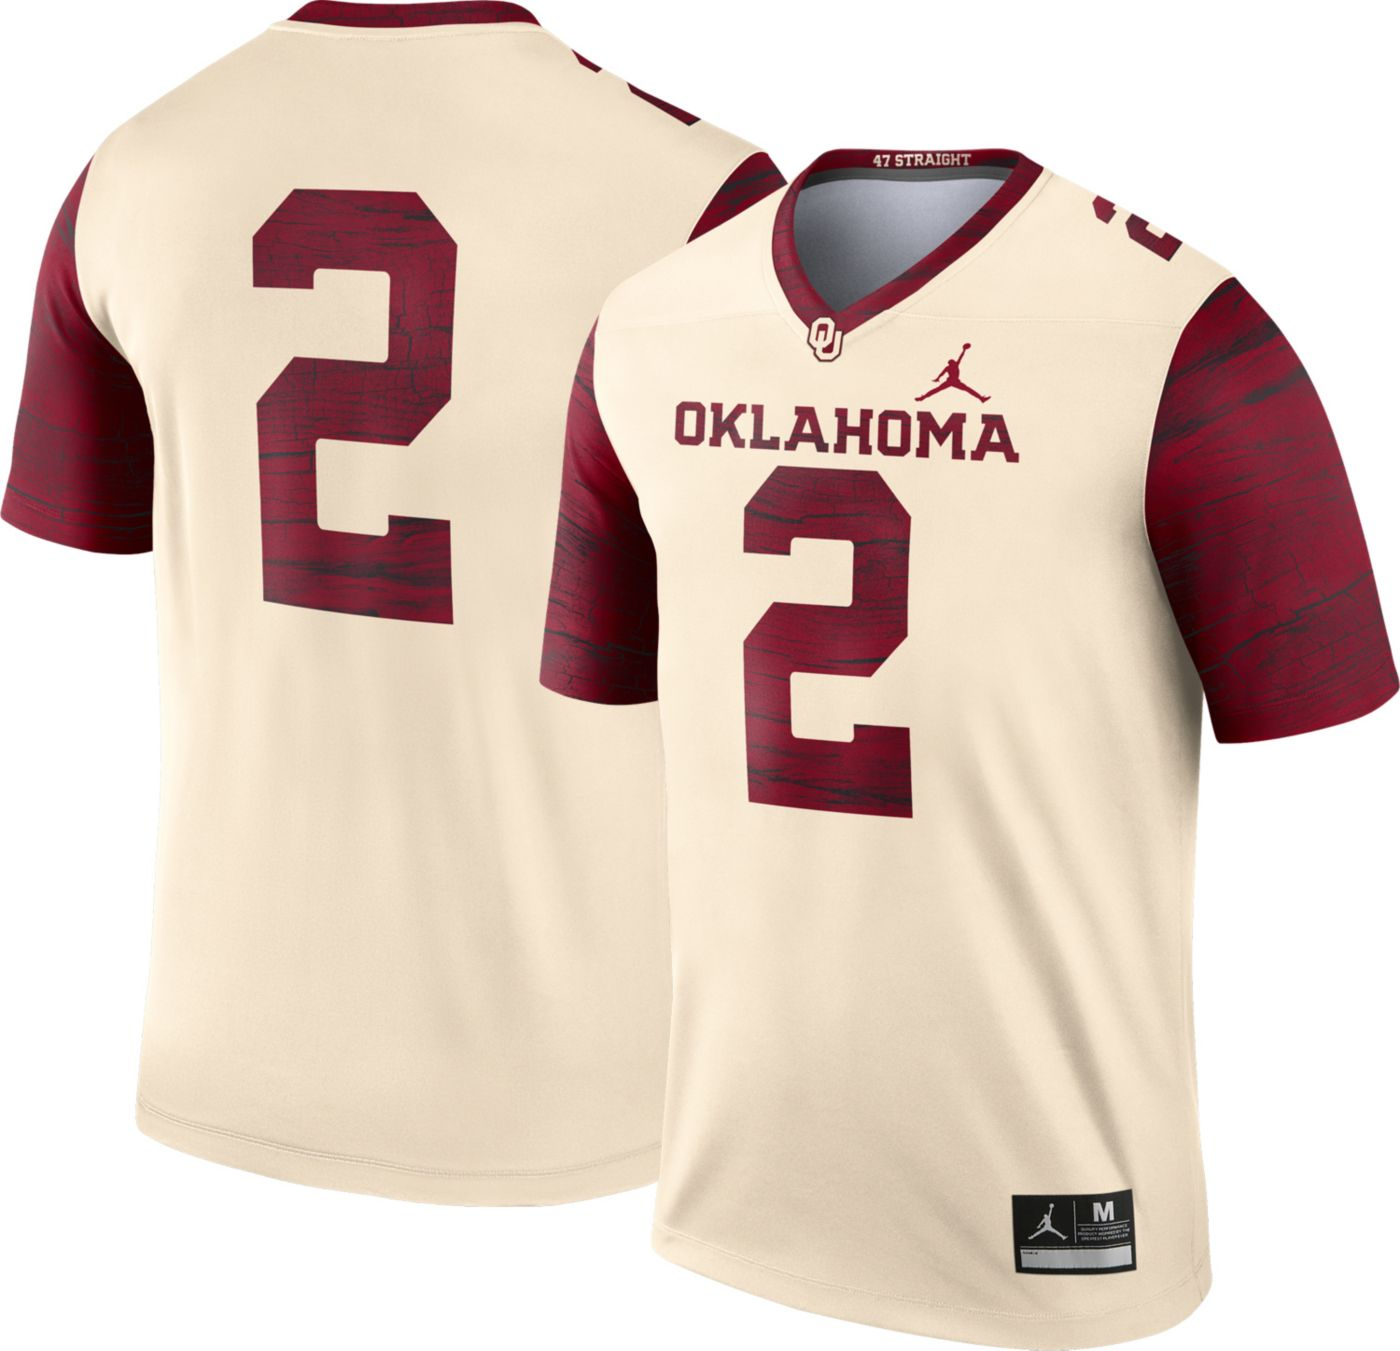 Jordan Men's Oklahoma Sooners #2 Cream Dri-FIT Legend Football Jersey